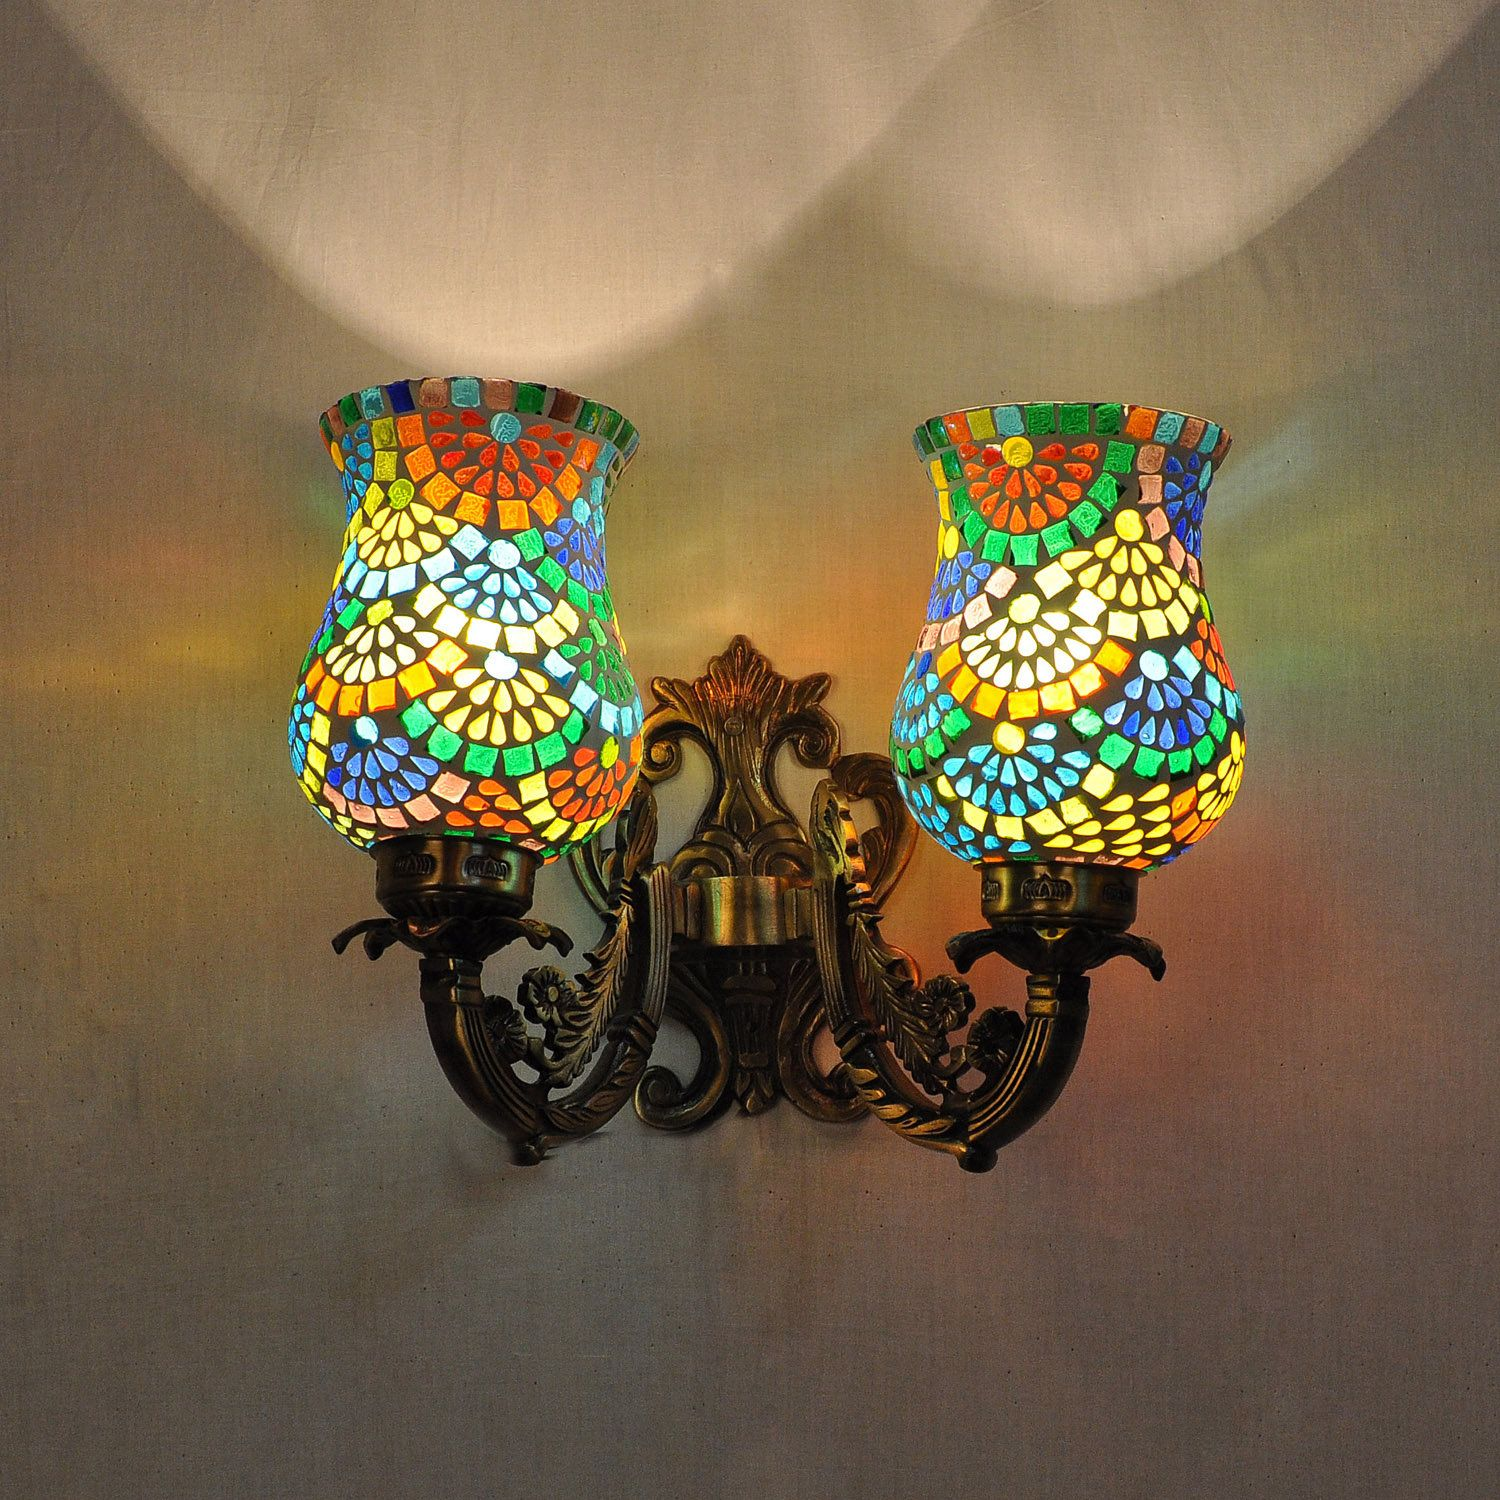 2 Arm Lighting Wall Sconces Multicolor Mosaic Lampshade 2 Wall